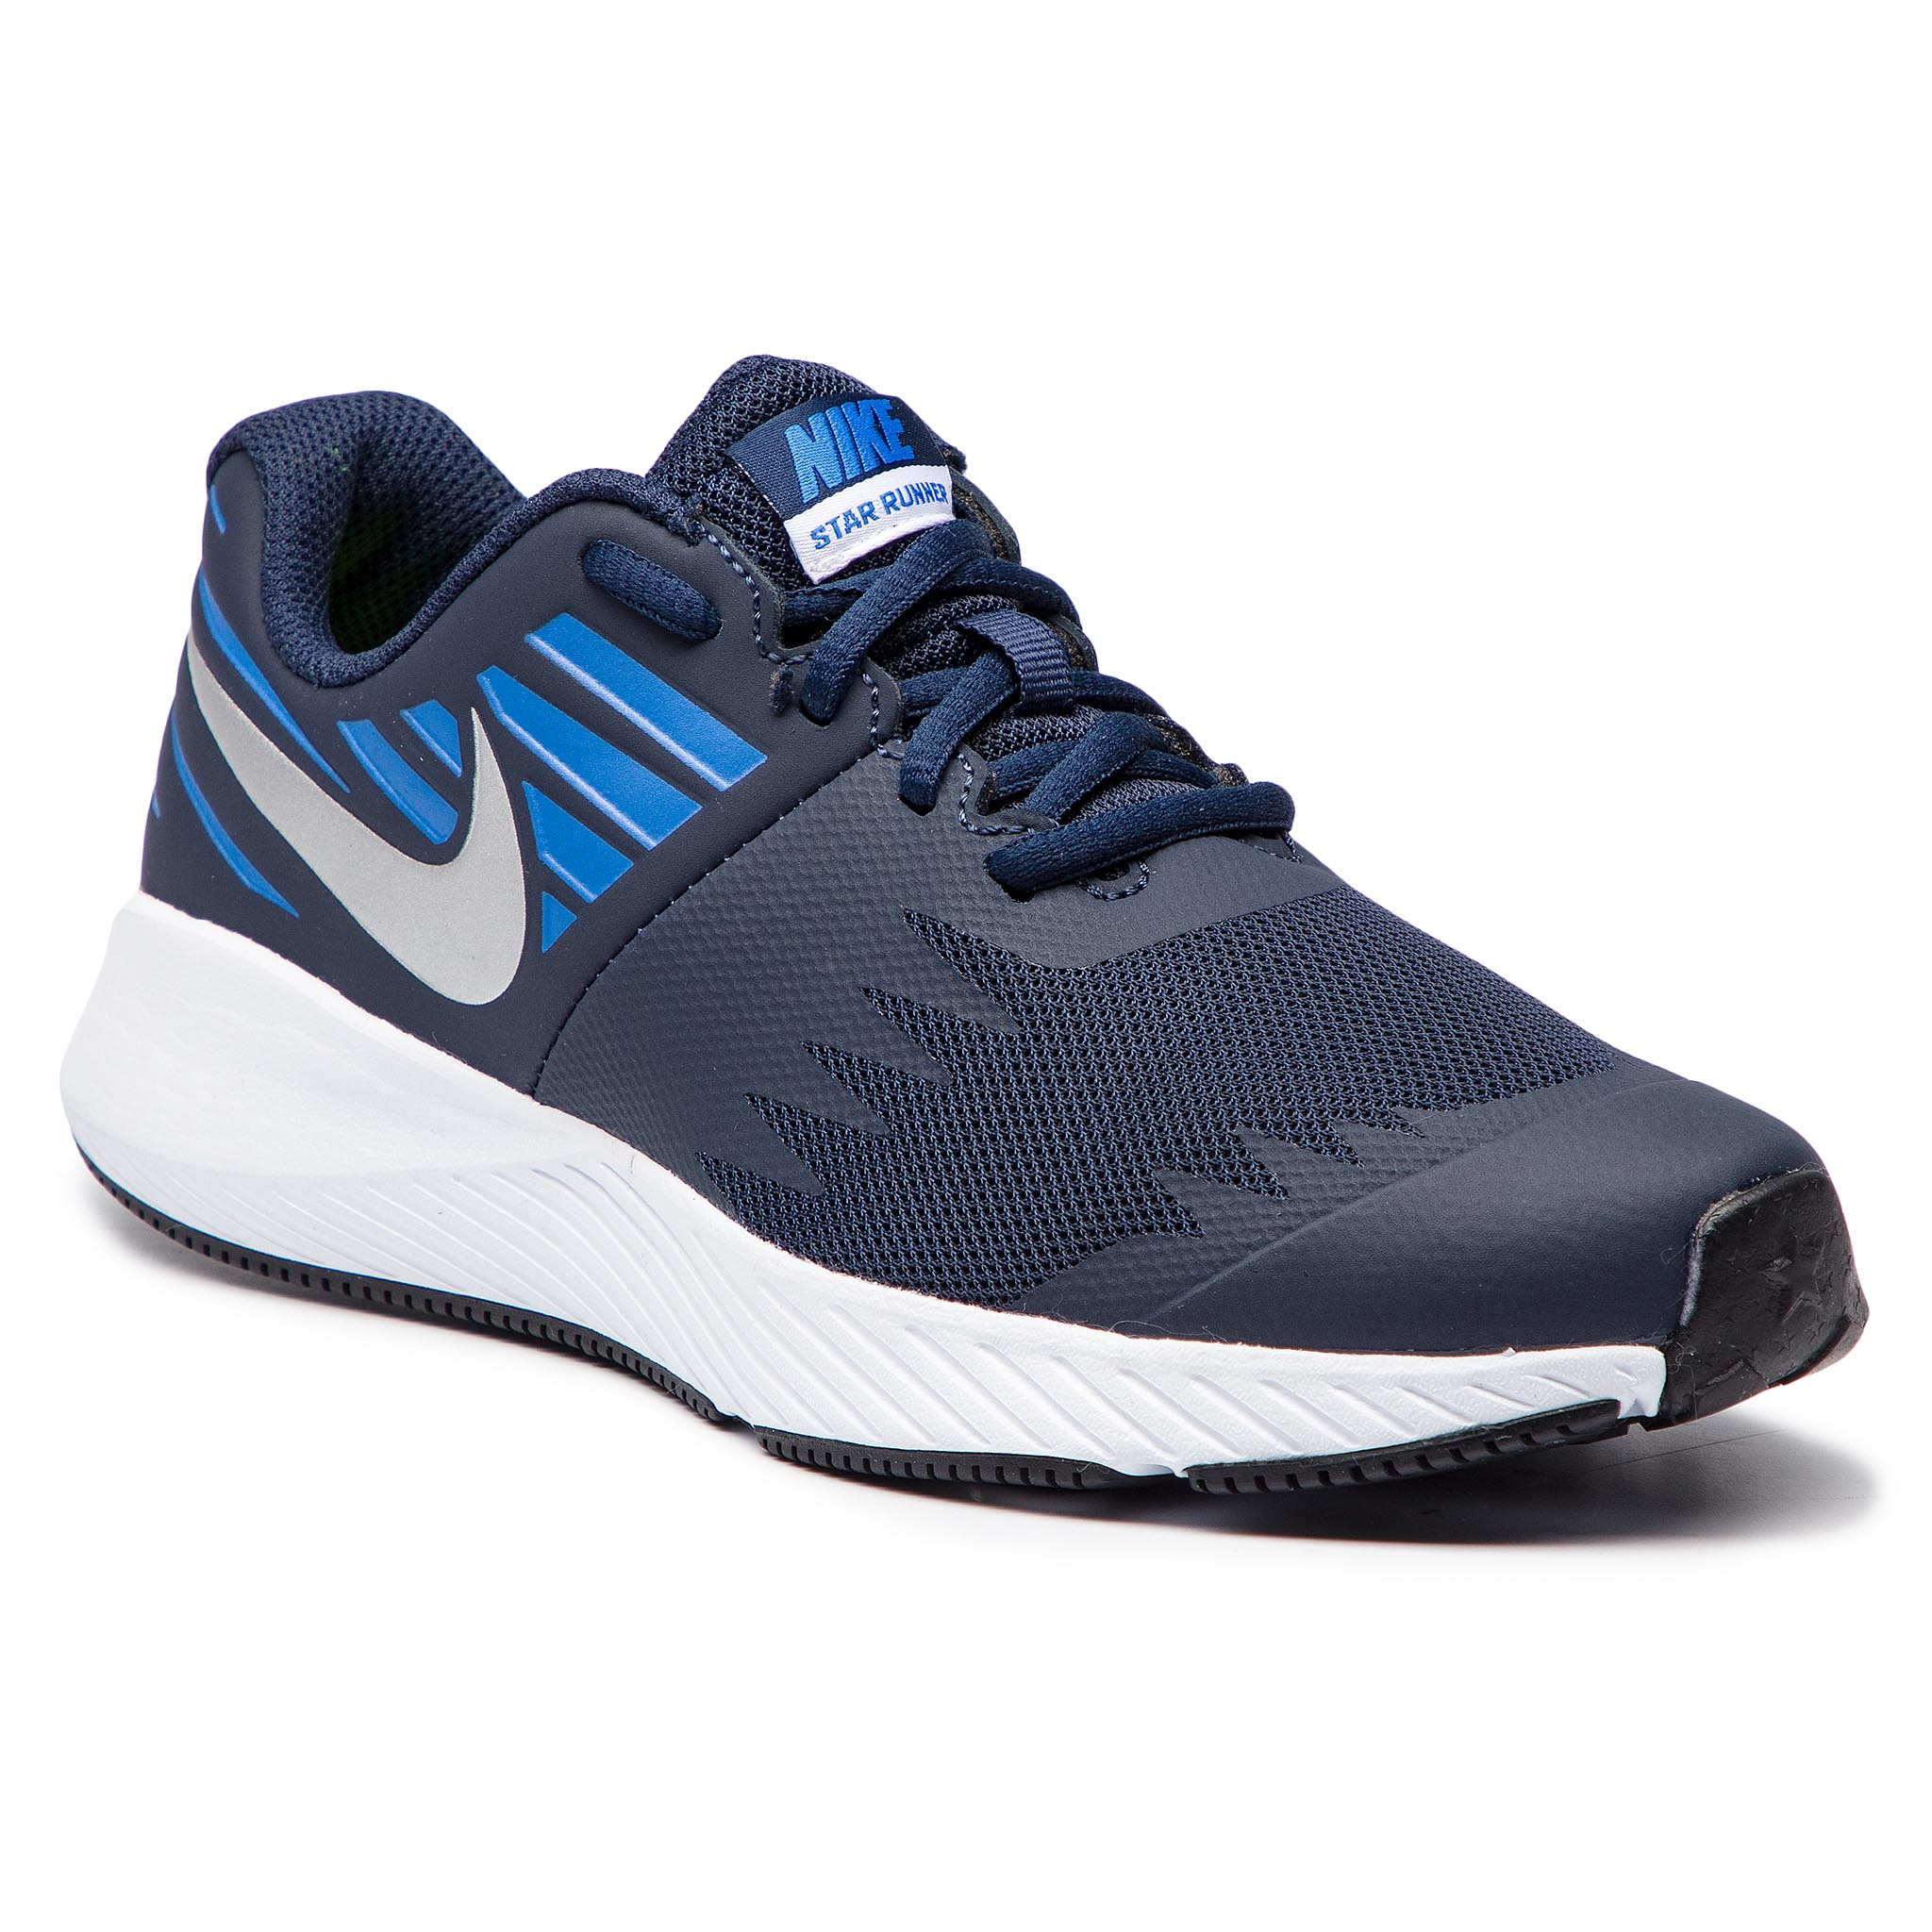 finest selection f2e6a cb930 Shoes NIKE Star Runner (GS) 907254 406 Obsidian Metakkic Silver